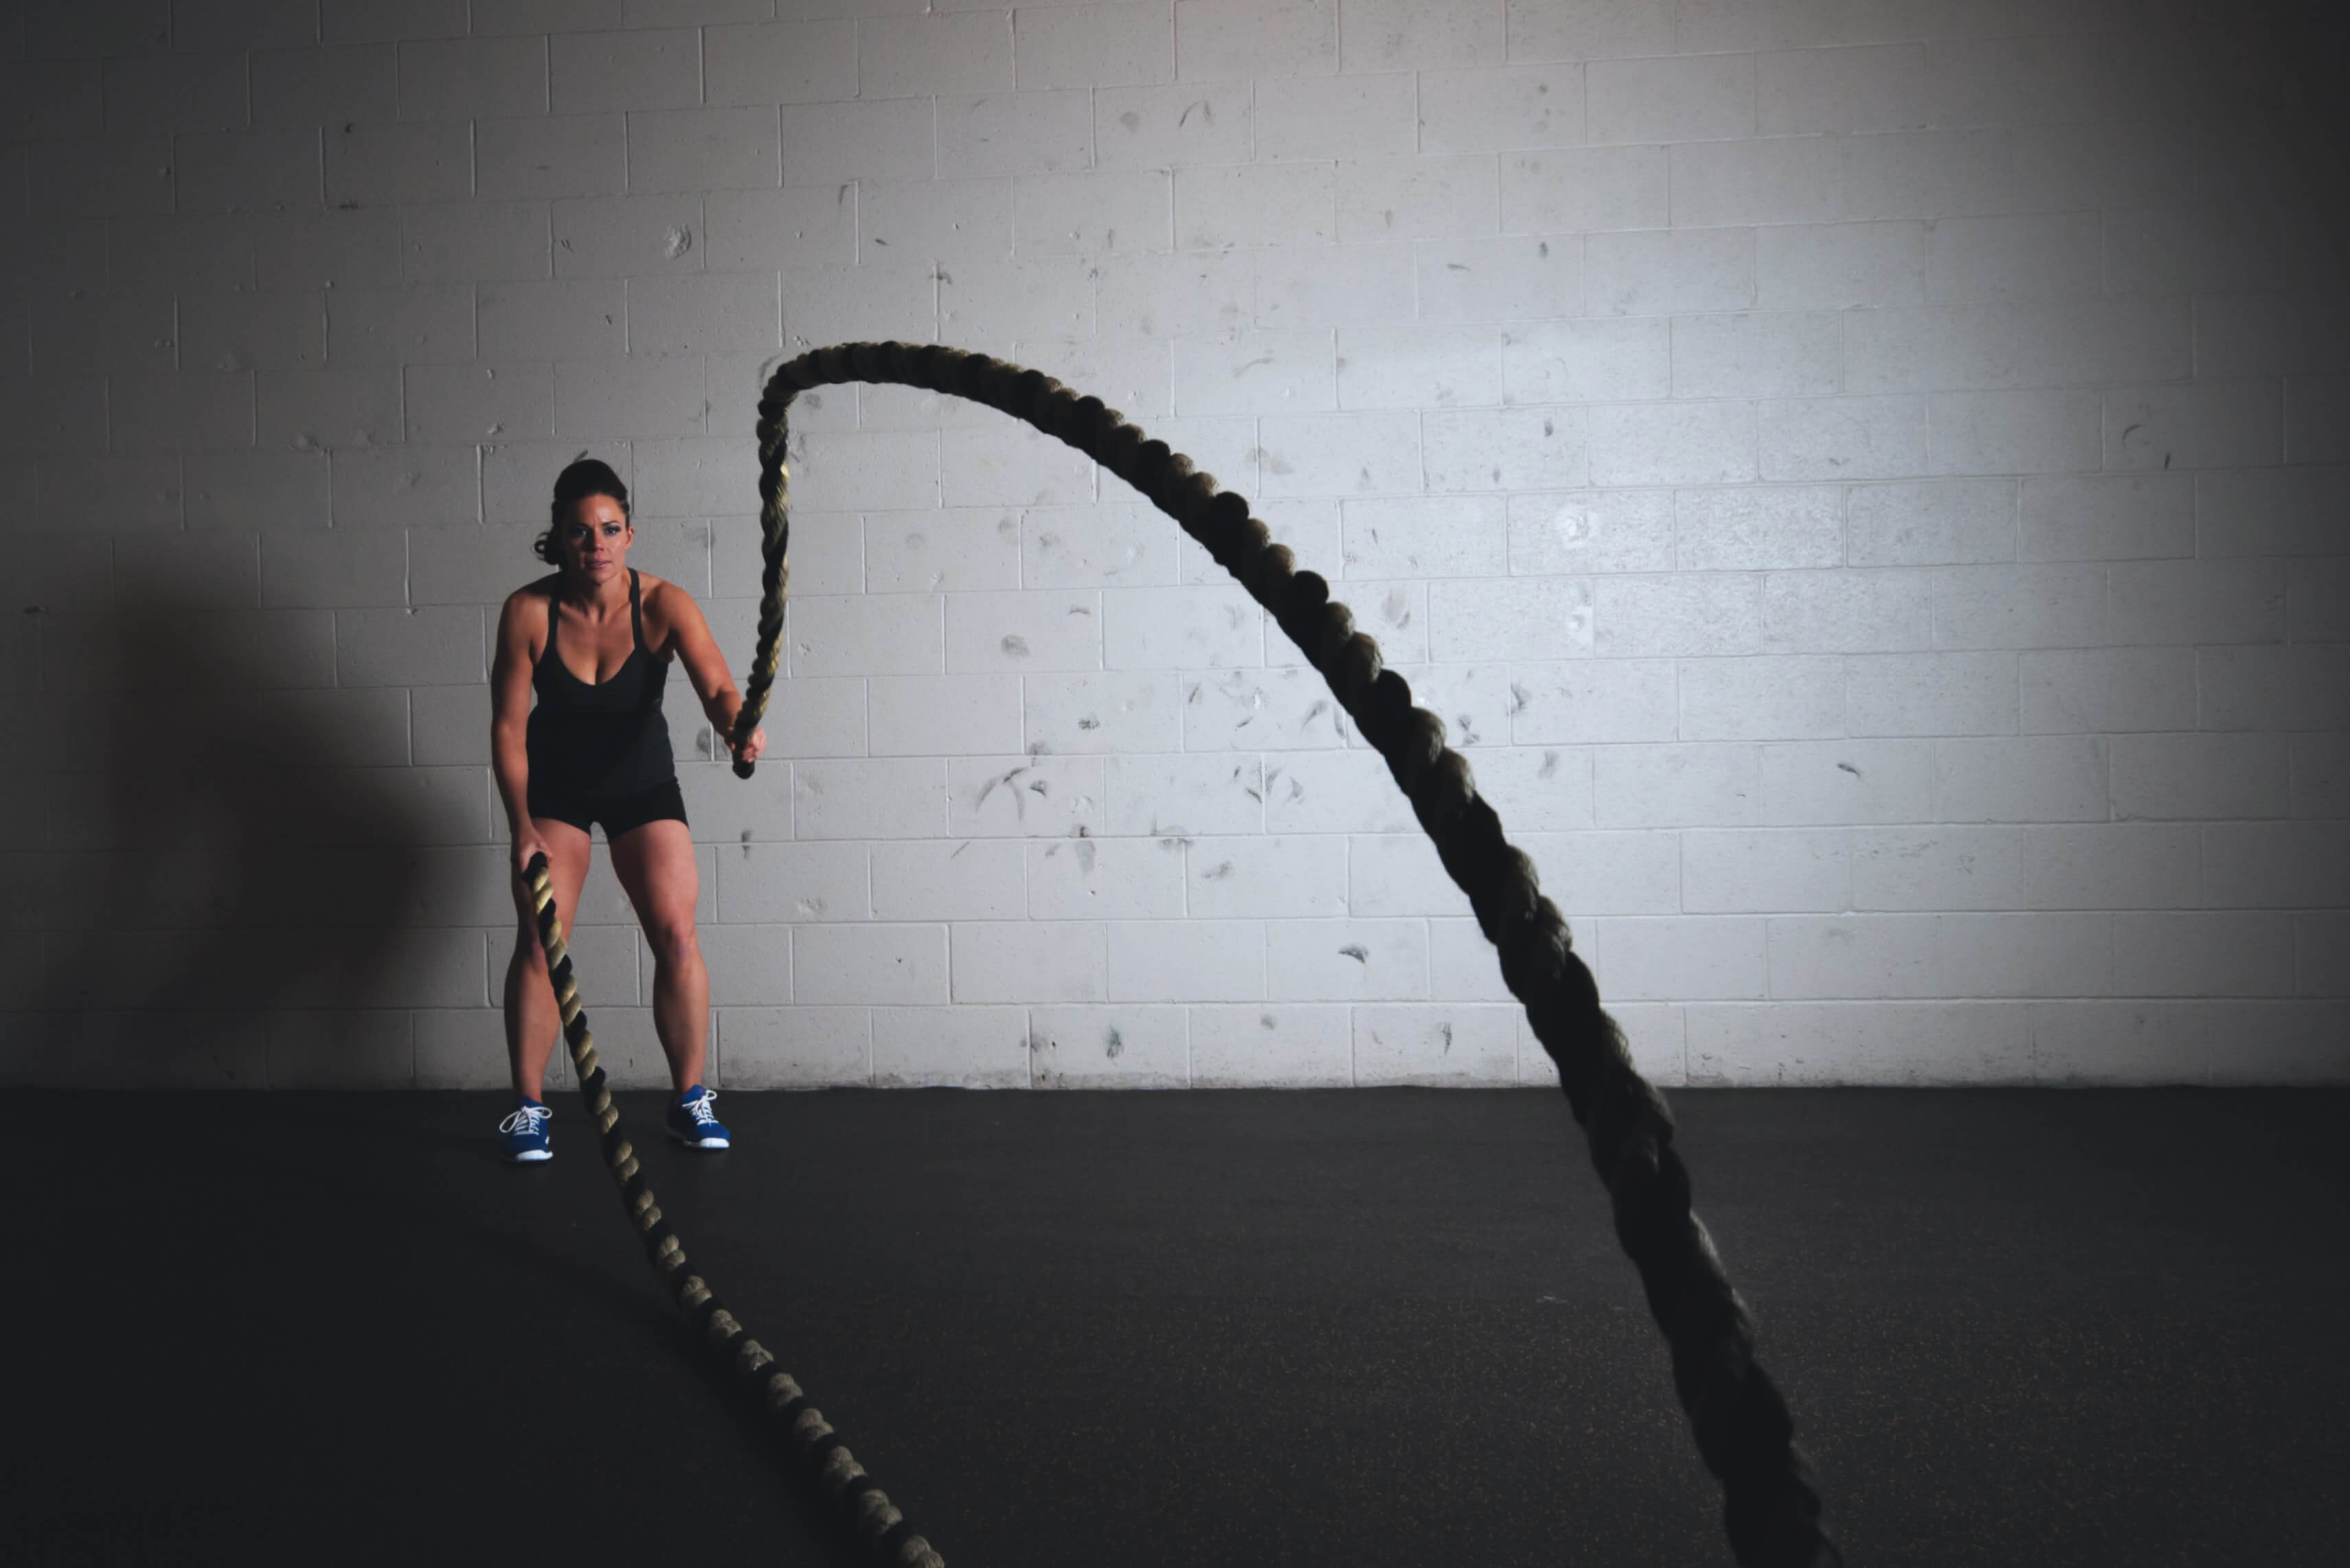 Fordomme om crossfit